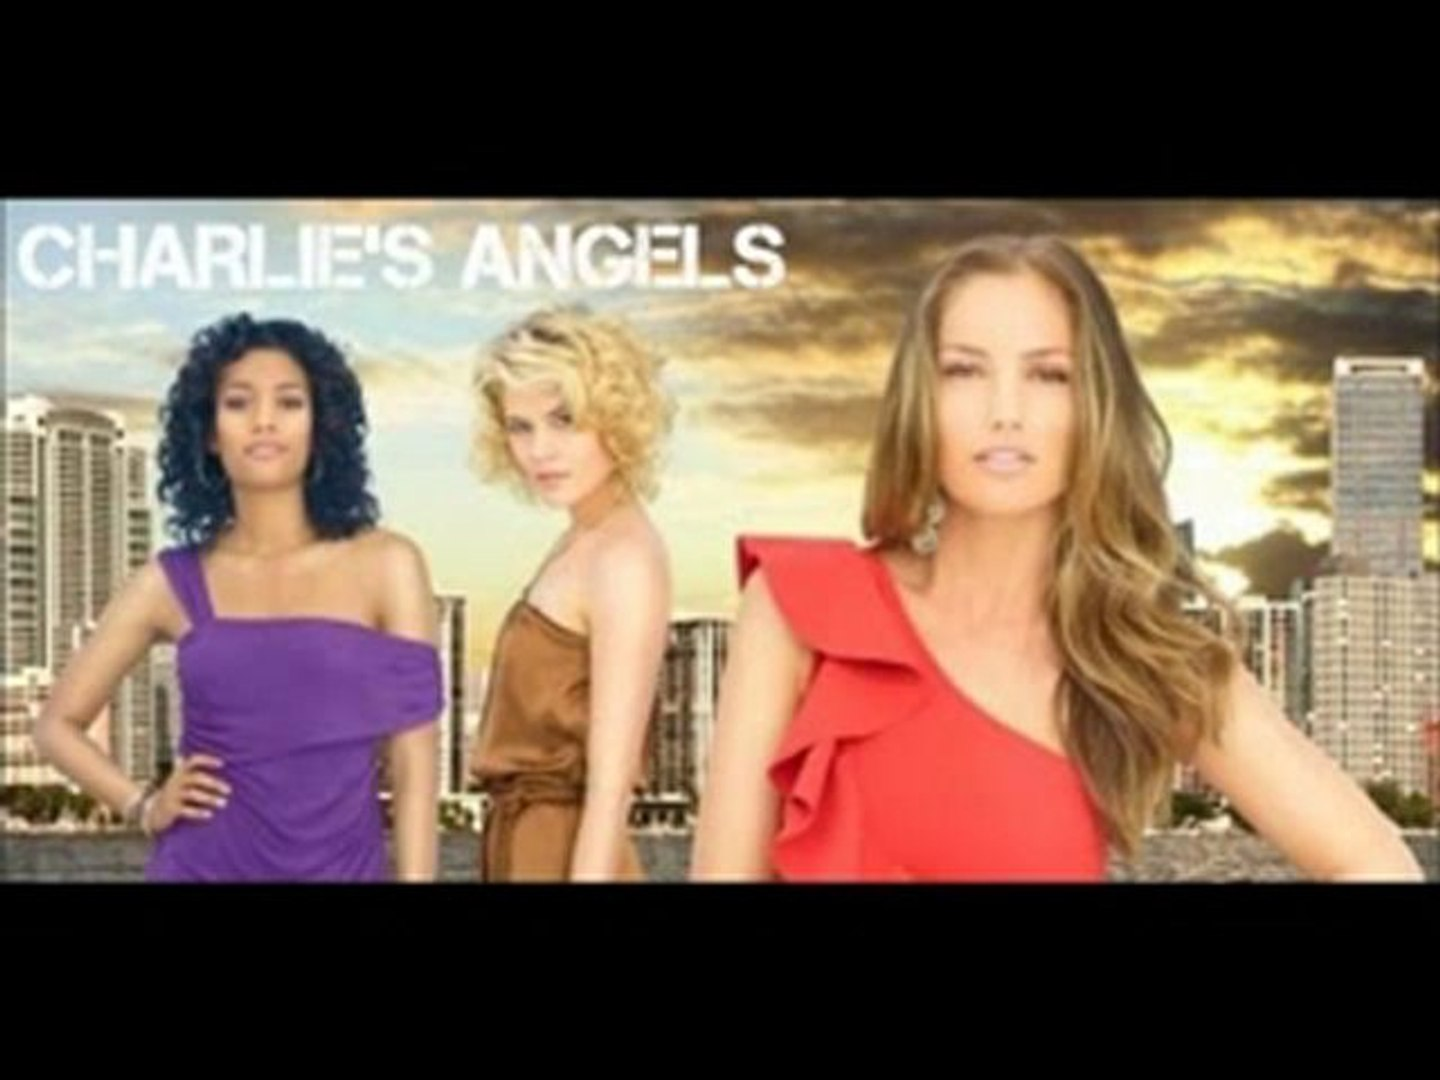 Watch Charlie's Angels S01E06 Online: Season 1 Episode 6 Black Hat Angels Live Streaming FLV